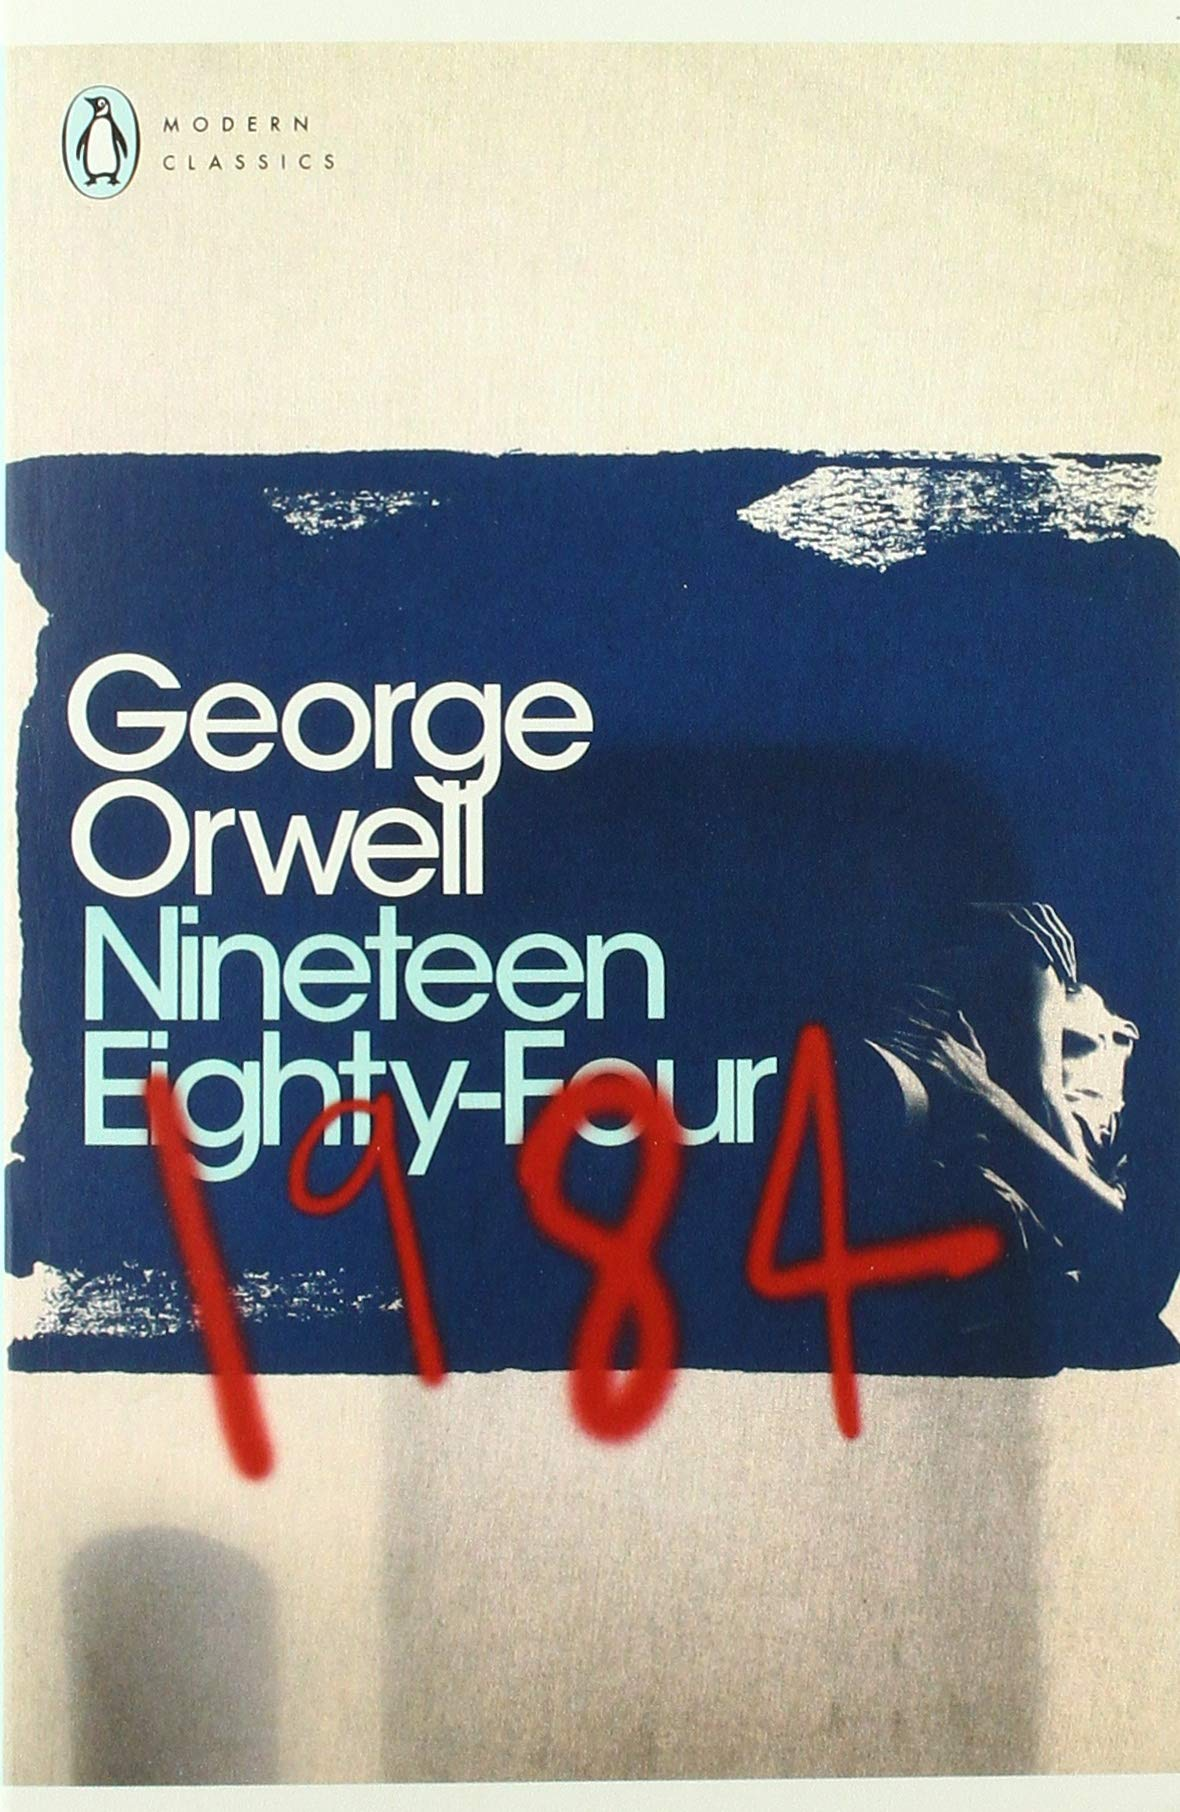 1984 Nineteen Eighty-Four (Penguin Modern Classics): Amazon.co.uk ...